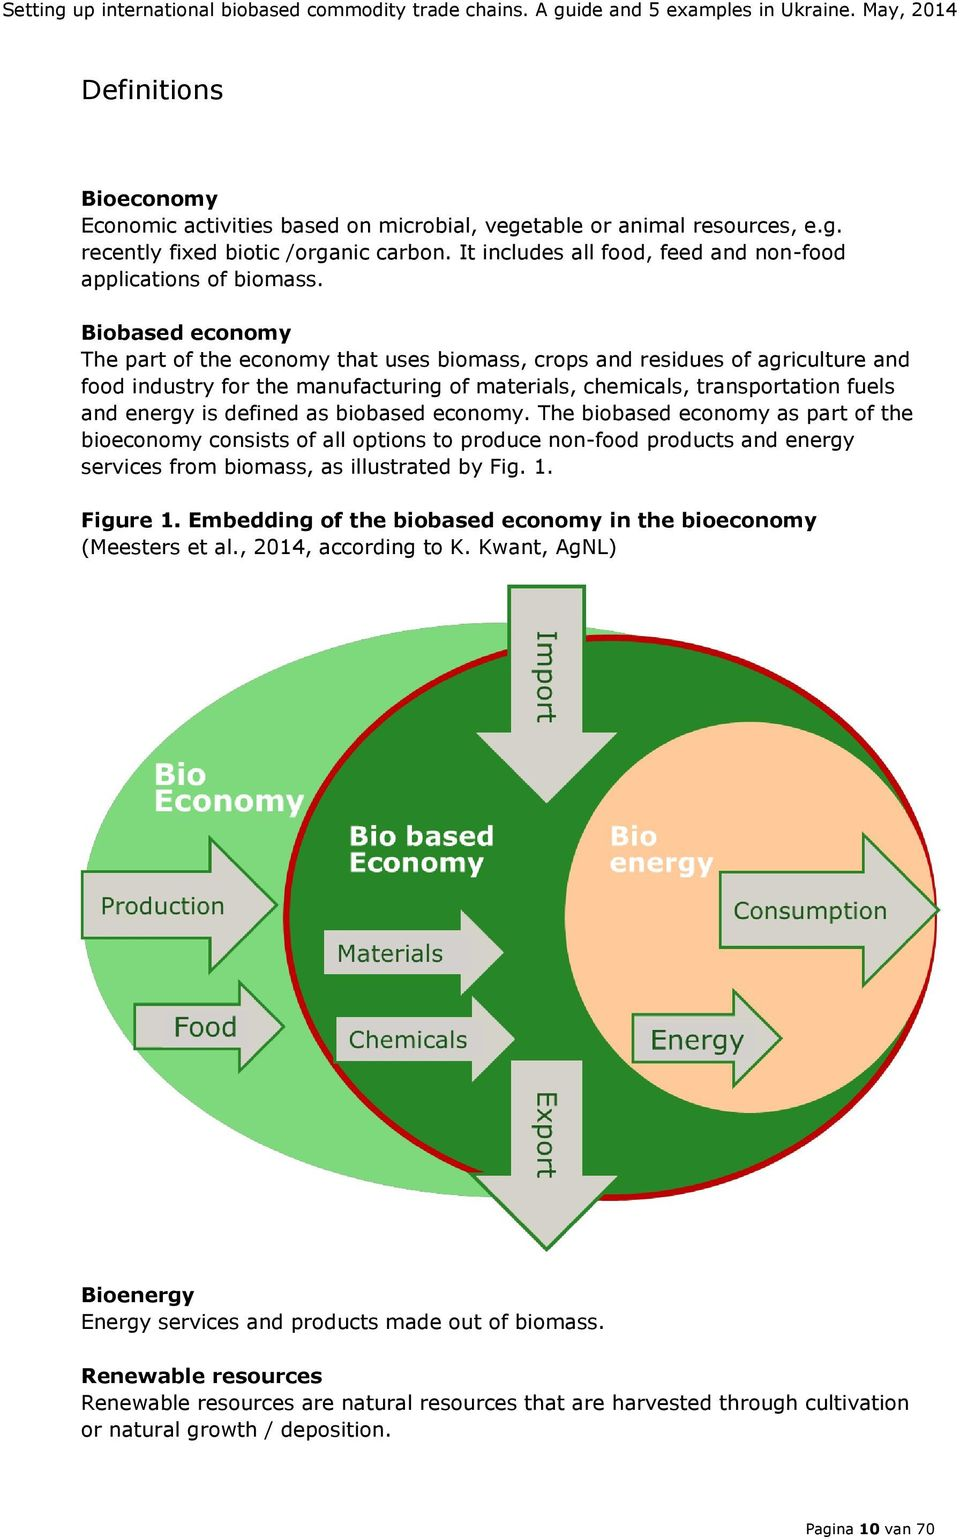 Biobased economy The part of the economy that uses biomass, crops and residues of agriculture and food industry for the manufacturing of materials, chemicals, transportation fuels and energy is